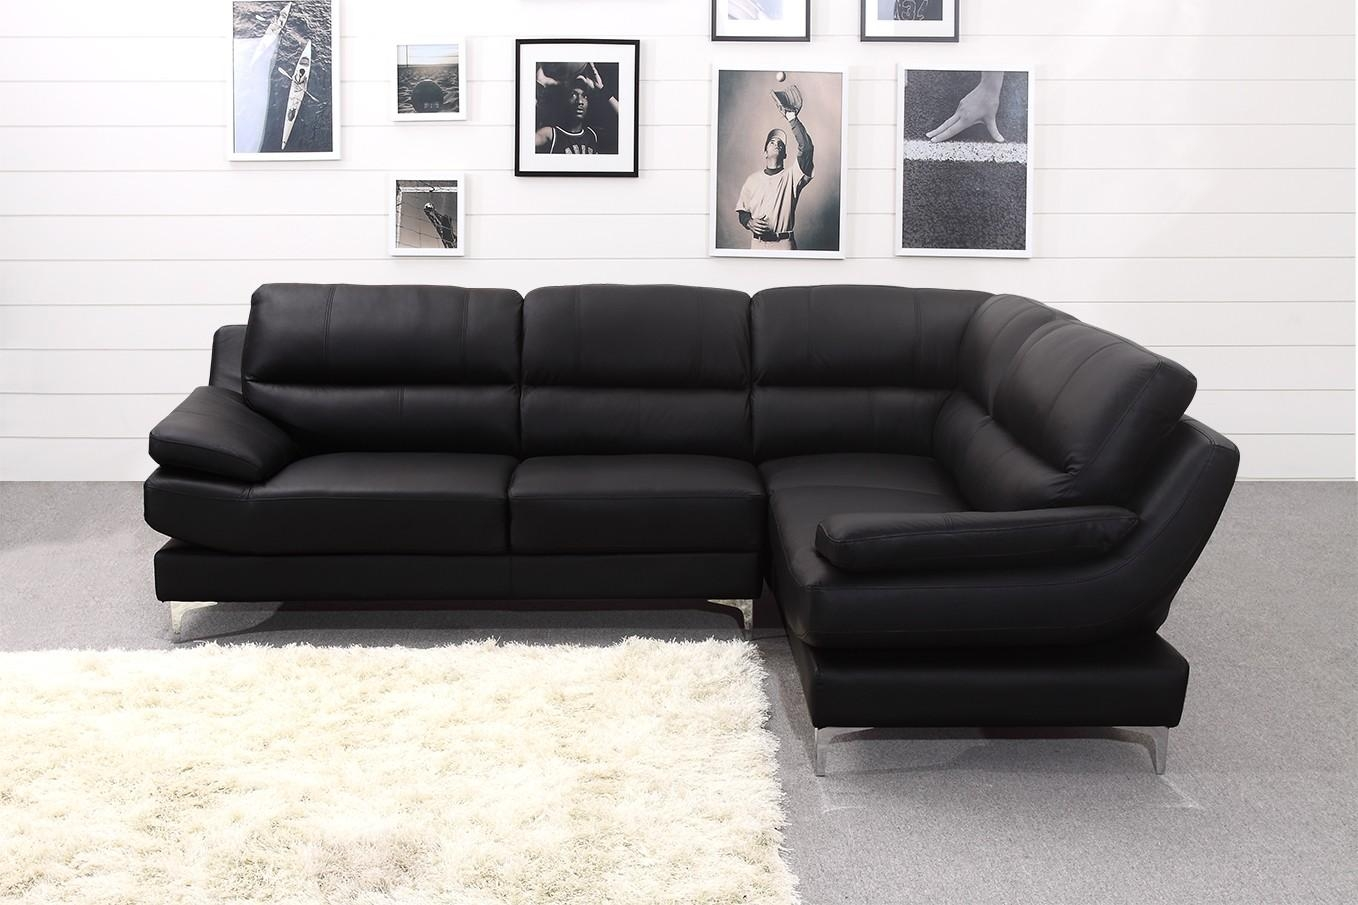 Leather Corner Sofa | Tehranmix Decoration Regarding Cheap Corner Sofas (Image 10 of 20)